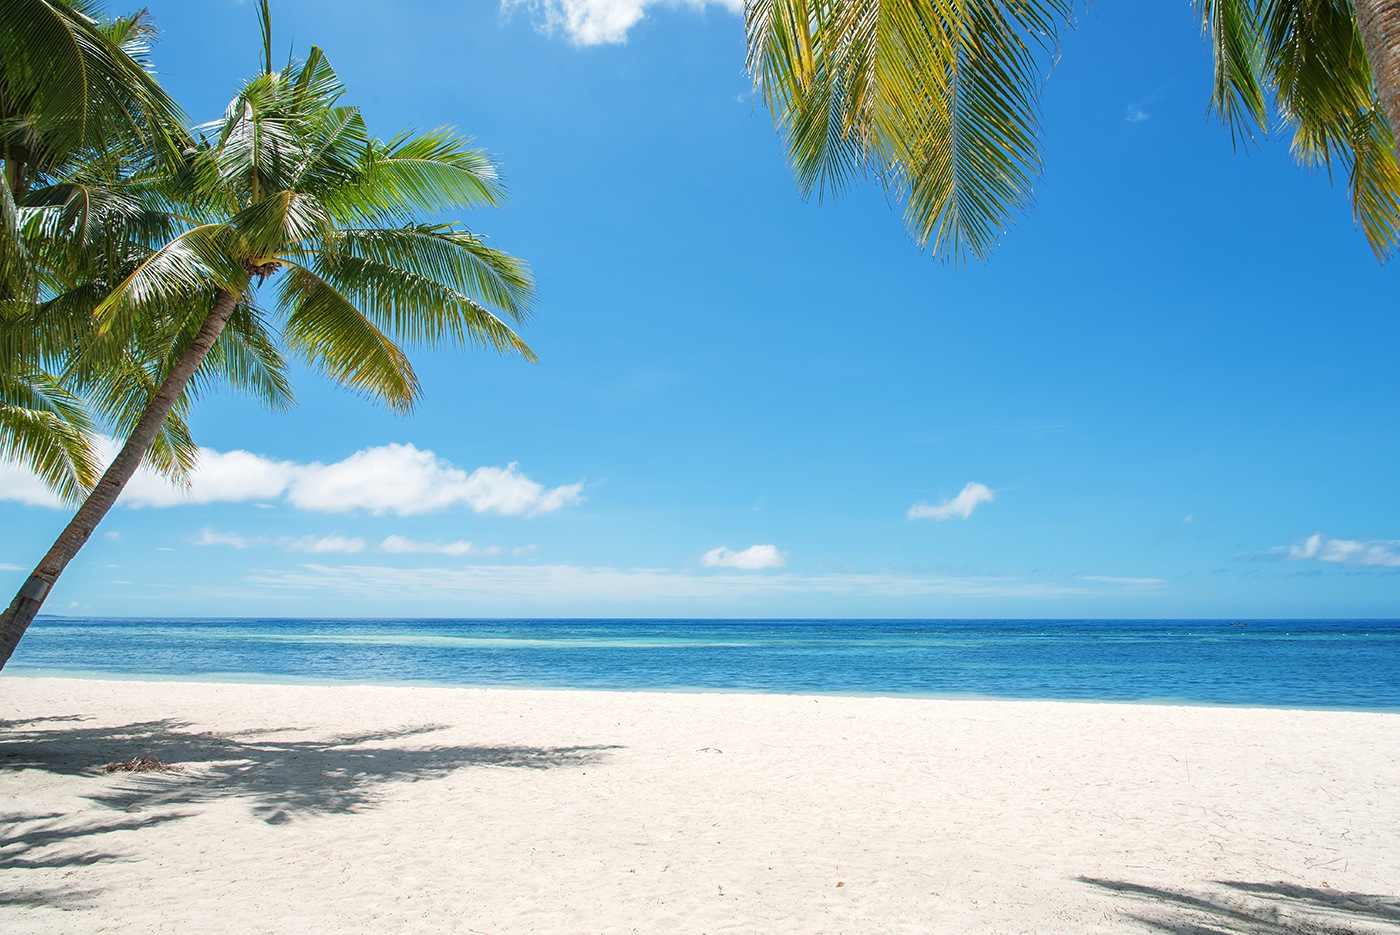 Stock image of a tropical beach showing clear skies, blue water, white sand, and palm trees.